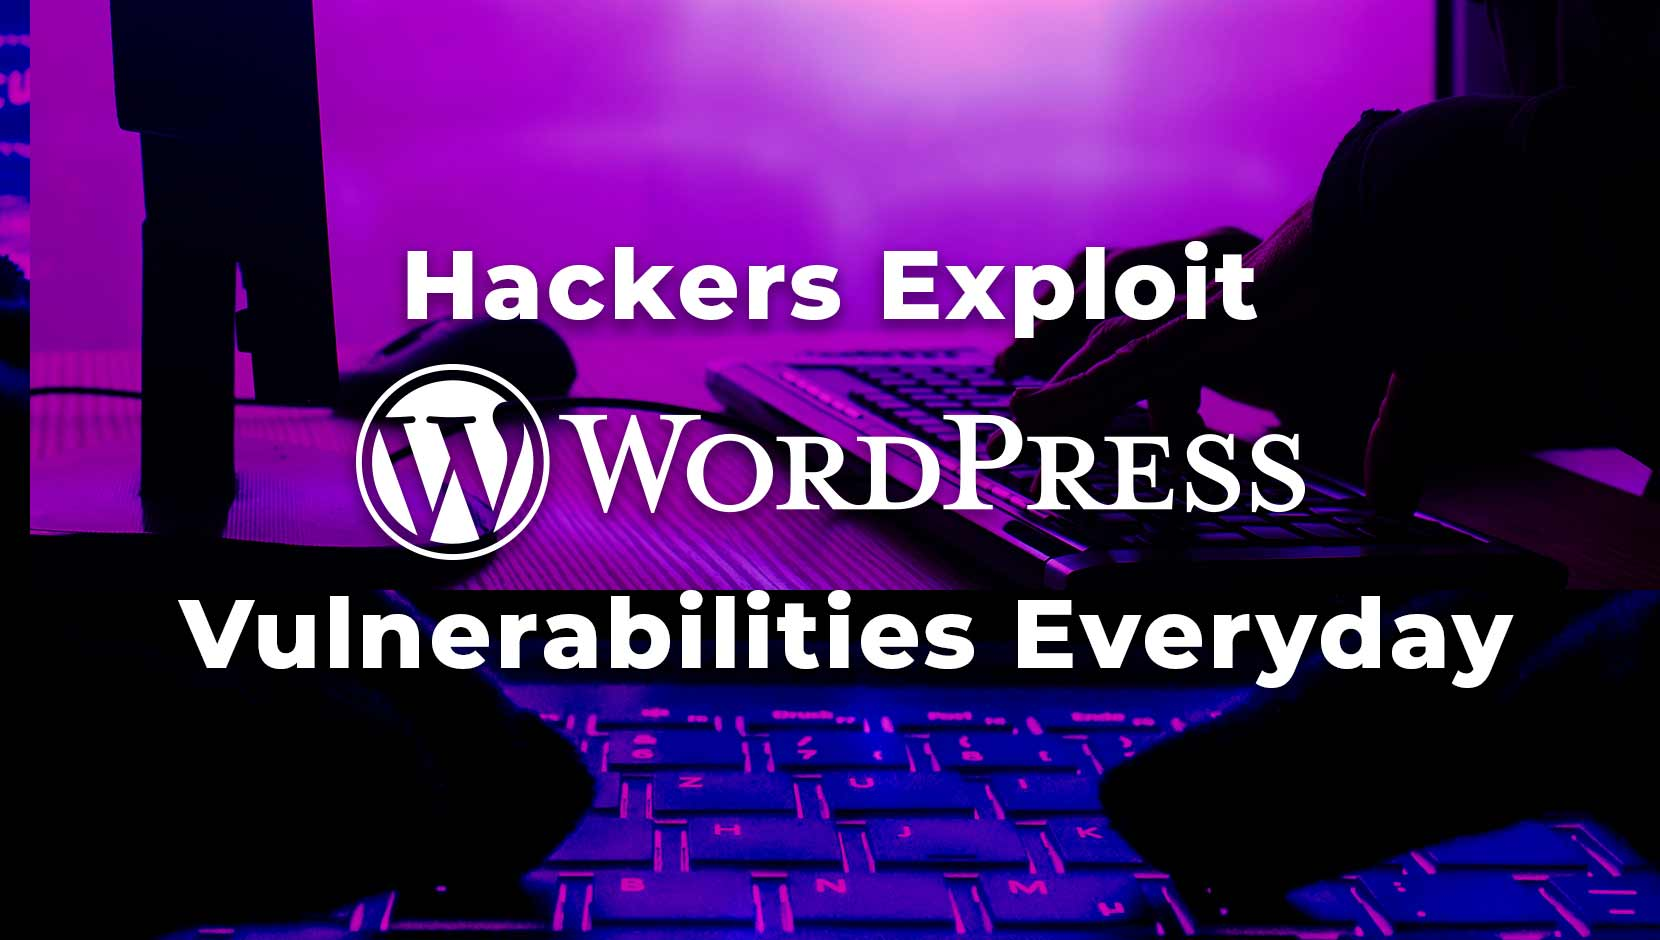 Hackers Exploit WordPress Vulnerabilities: Here's How